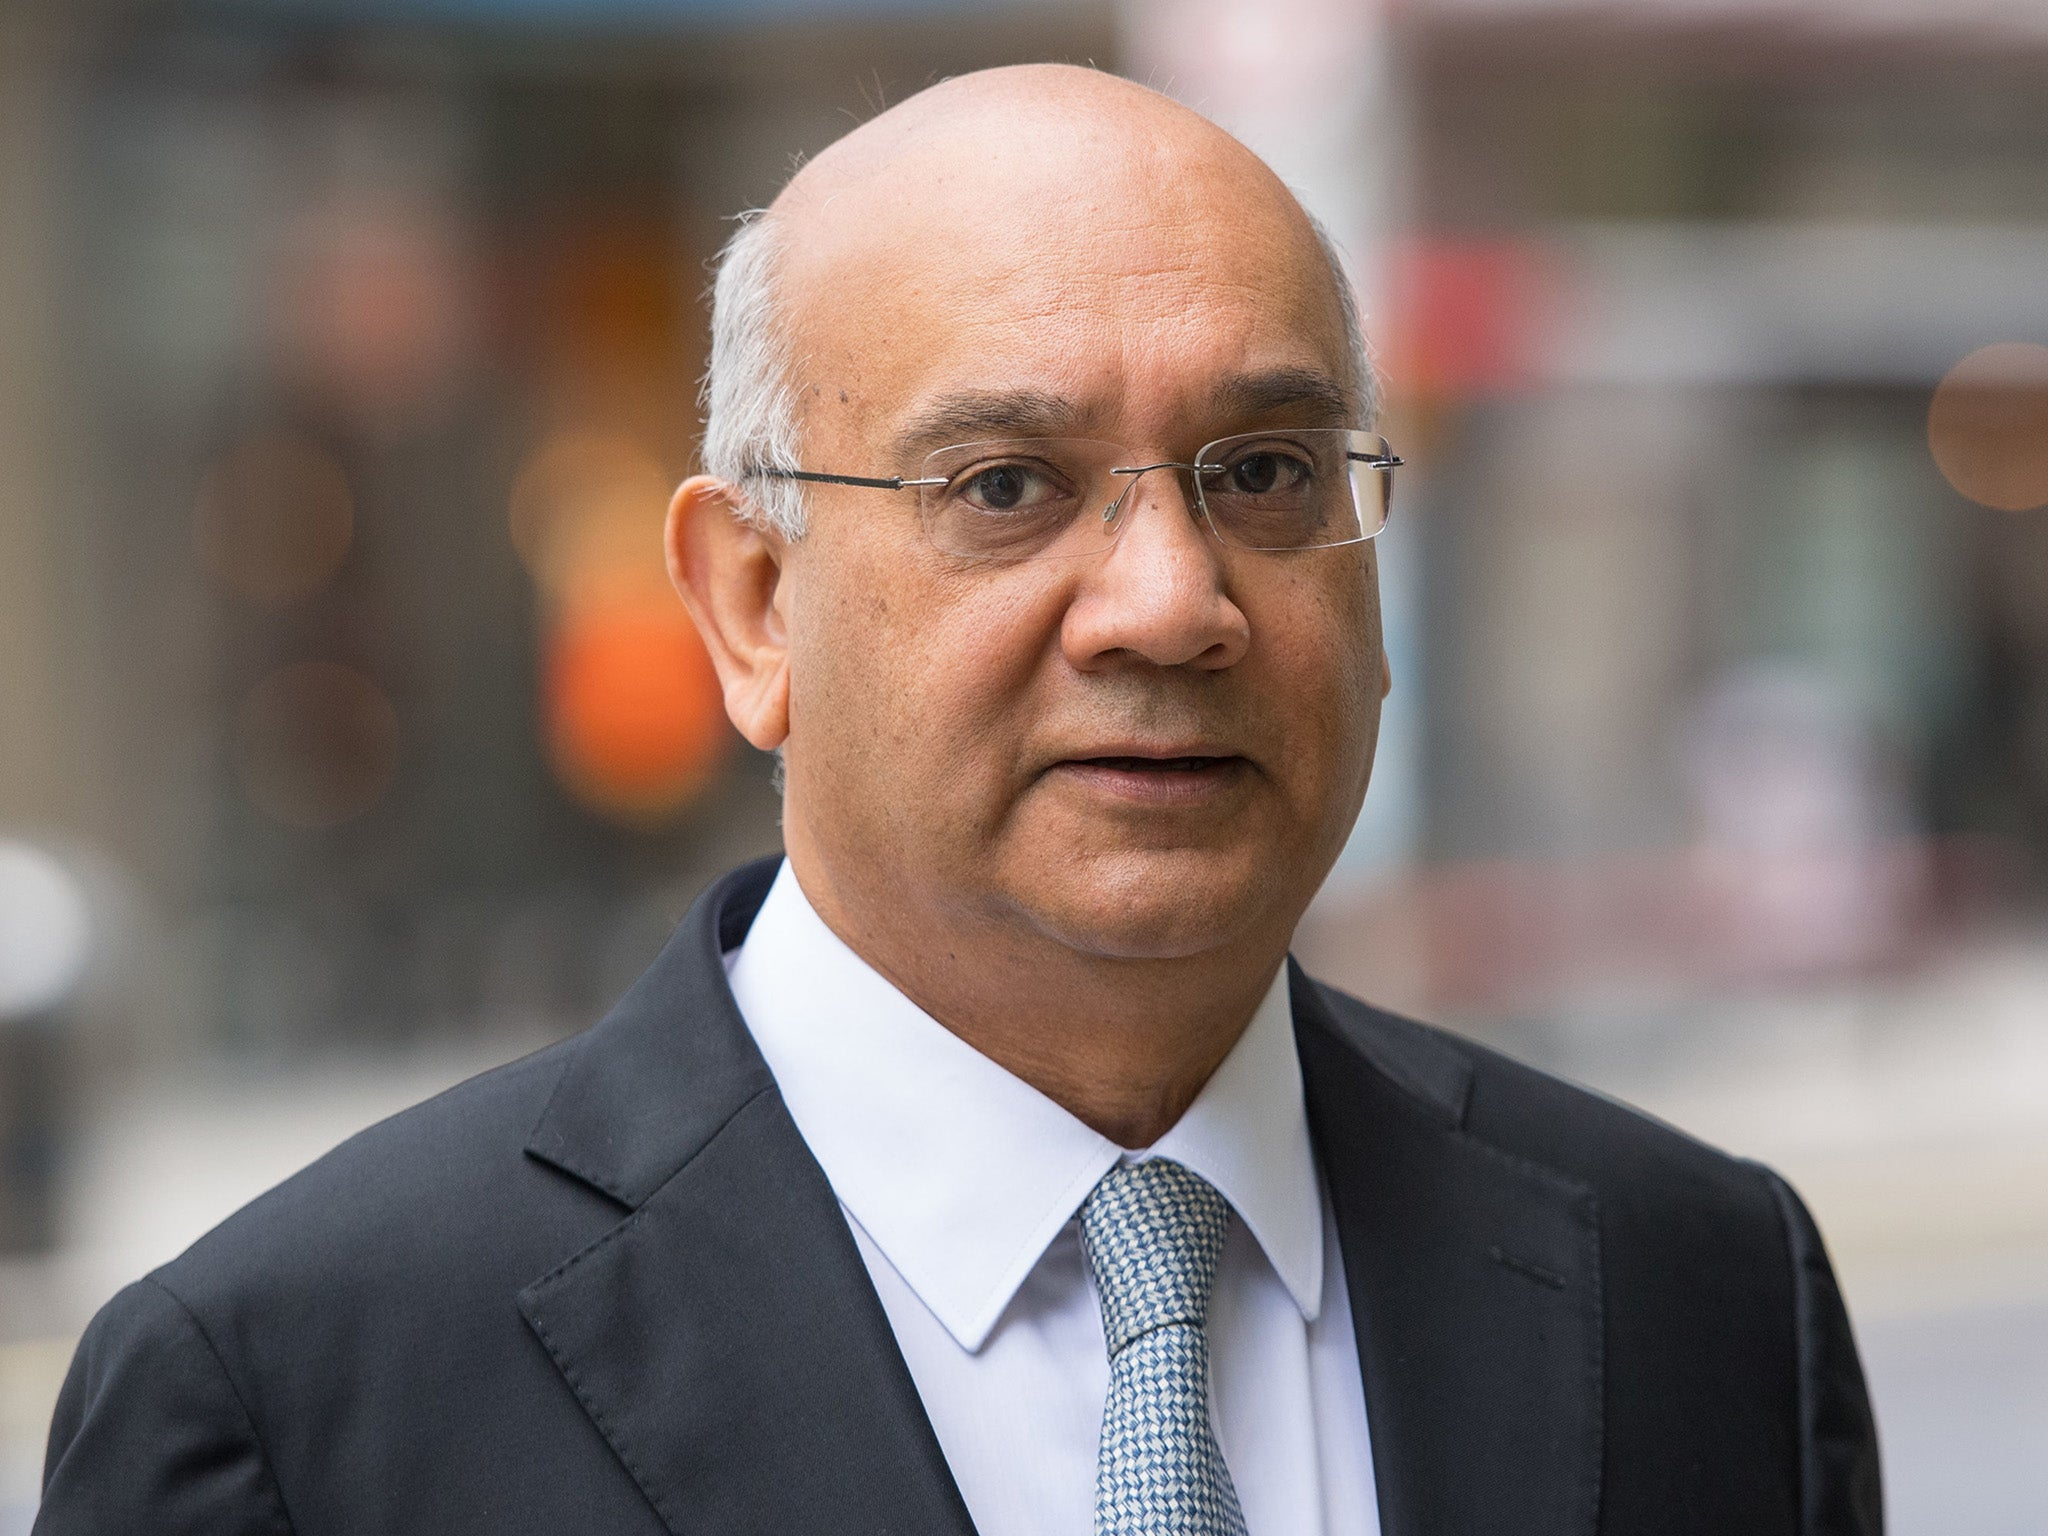 Labour's Keith Vaz will not stand for re-election following cocaine and prostitute scandal